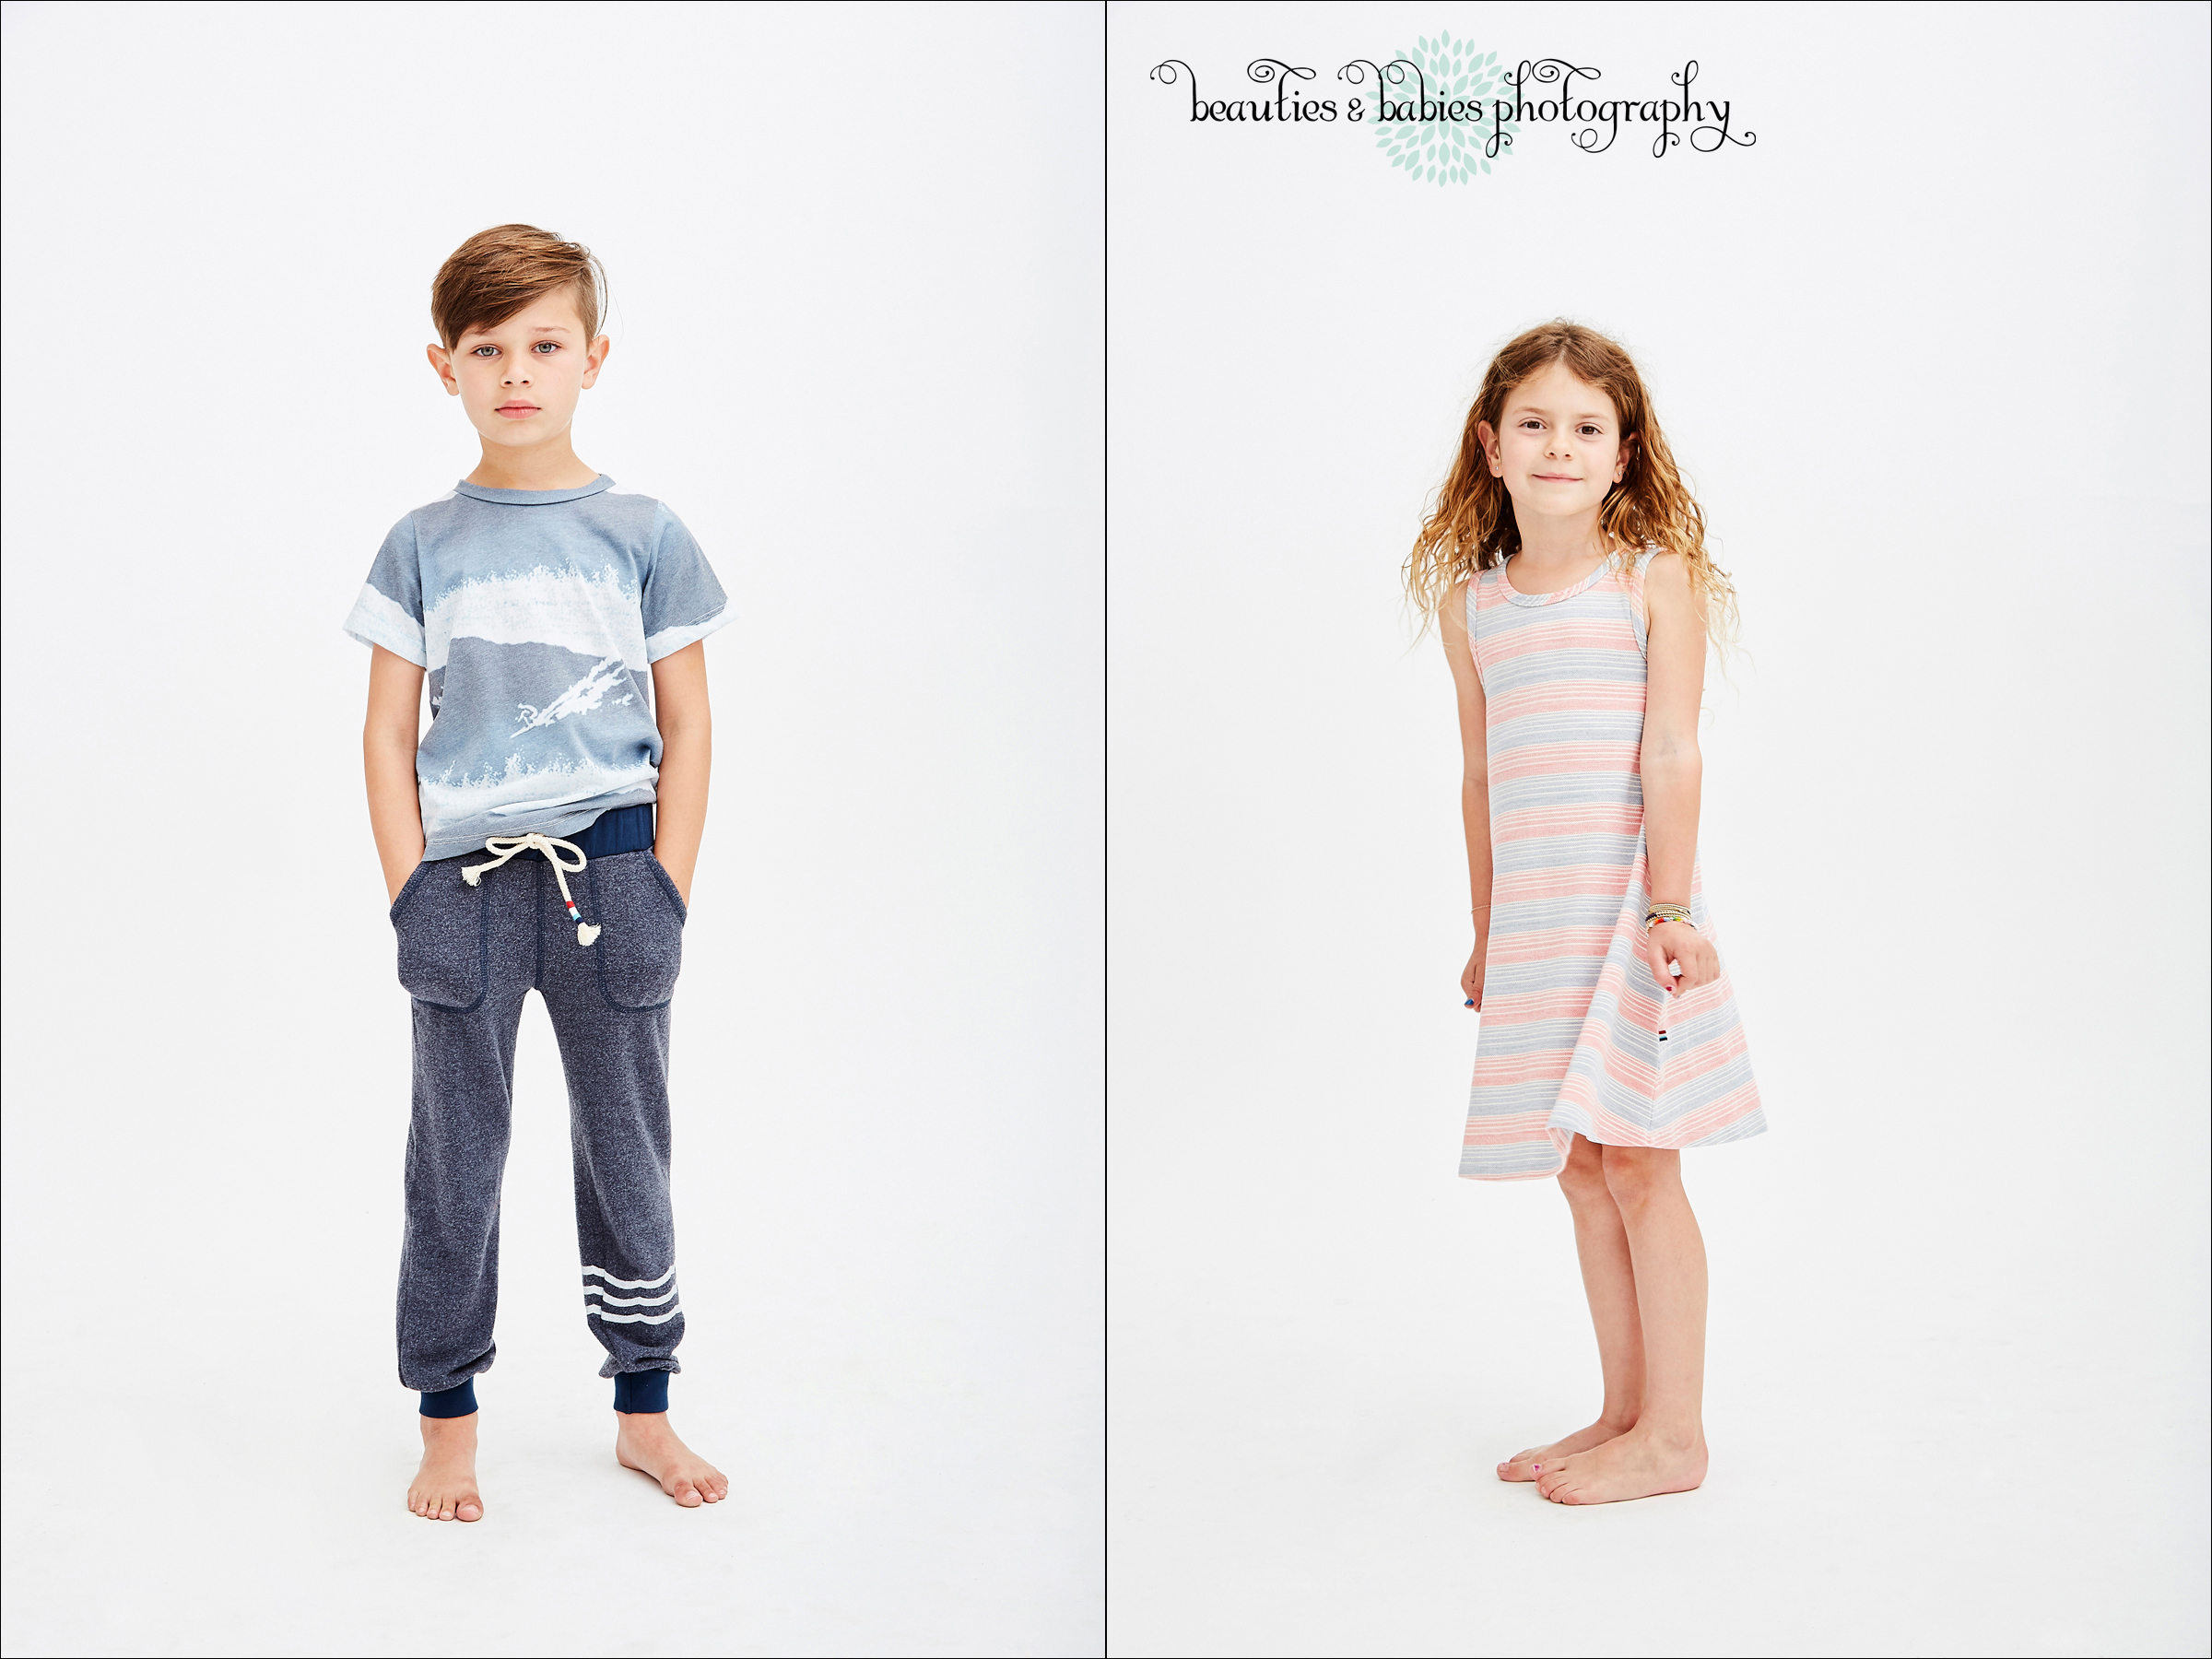 Sol Angeles summer kids clothing line photographer Los Angeles professional children's studio photography